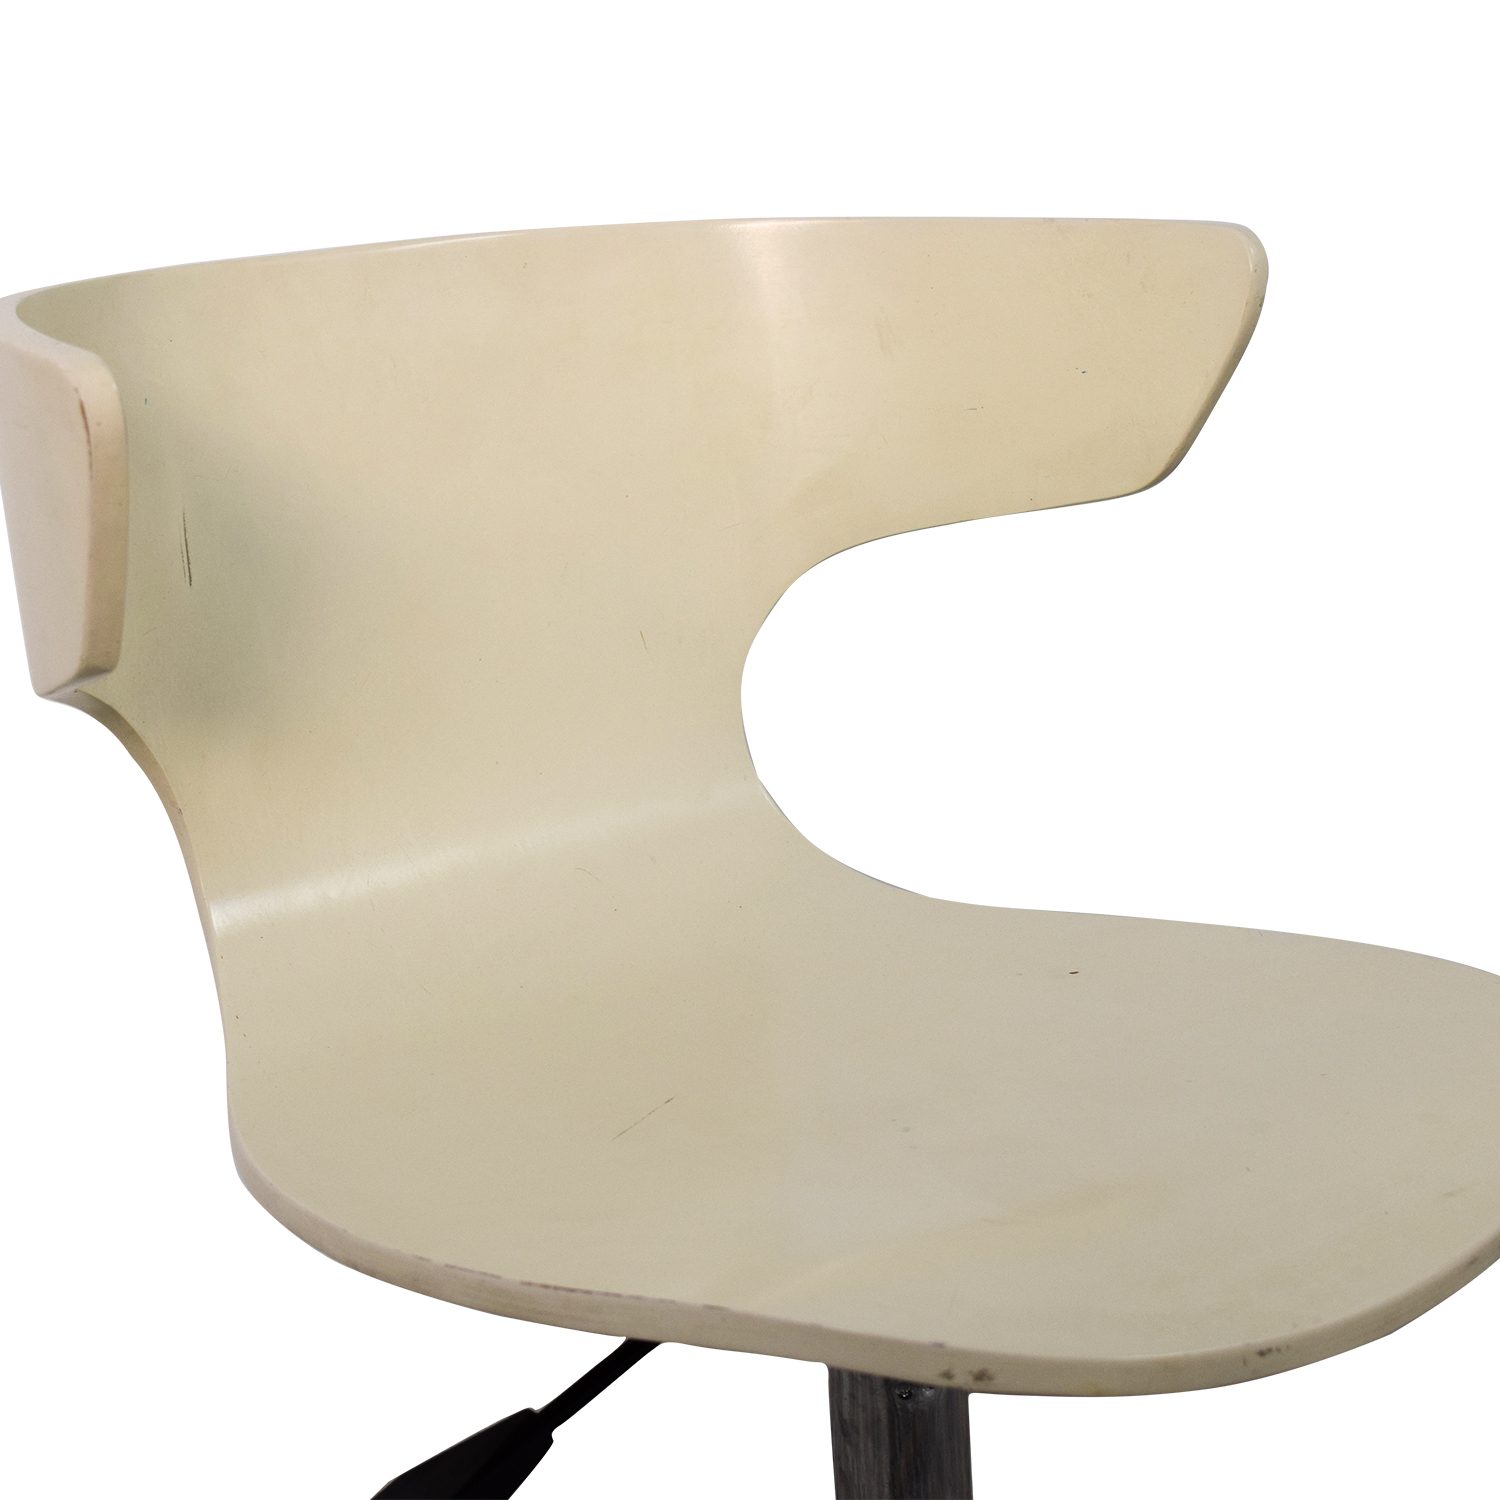 ... Chairs; Shop West Elm West Elm White Modern Chair With Casters Online  ...